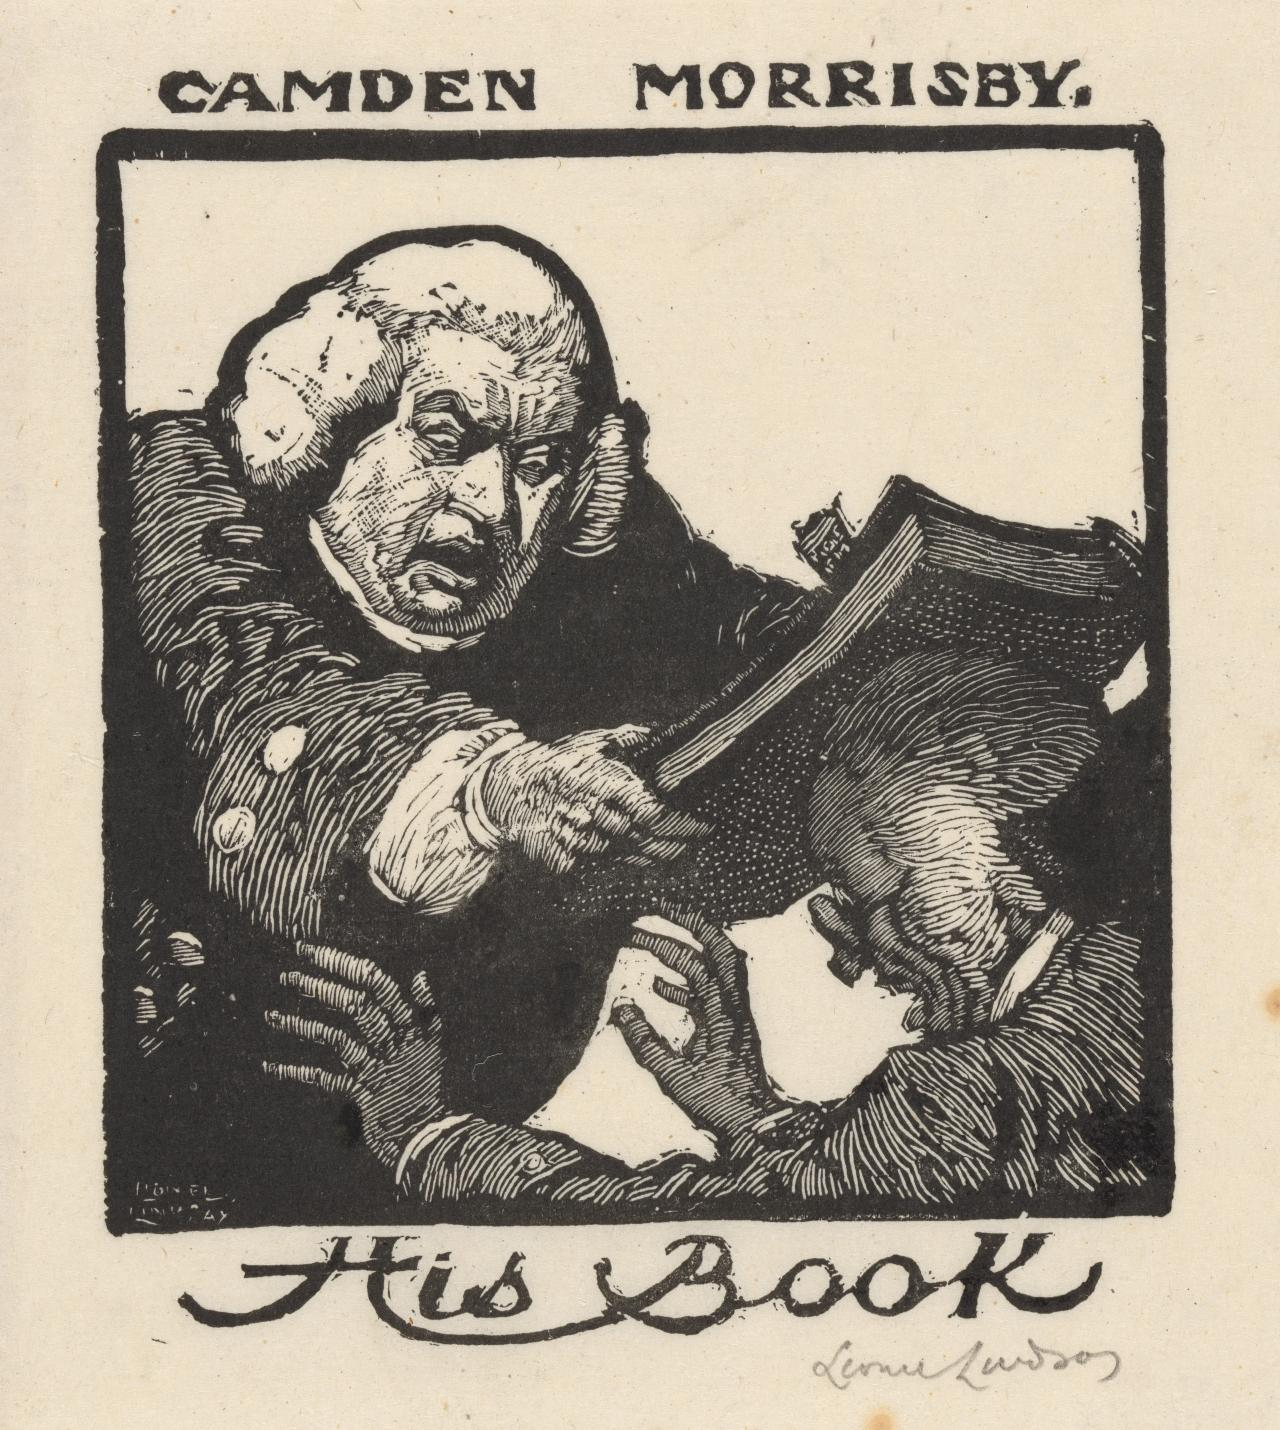 Camden Morrisby, his book